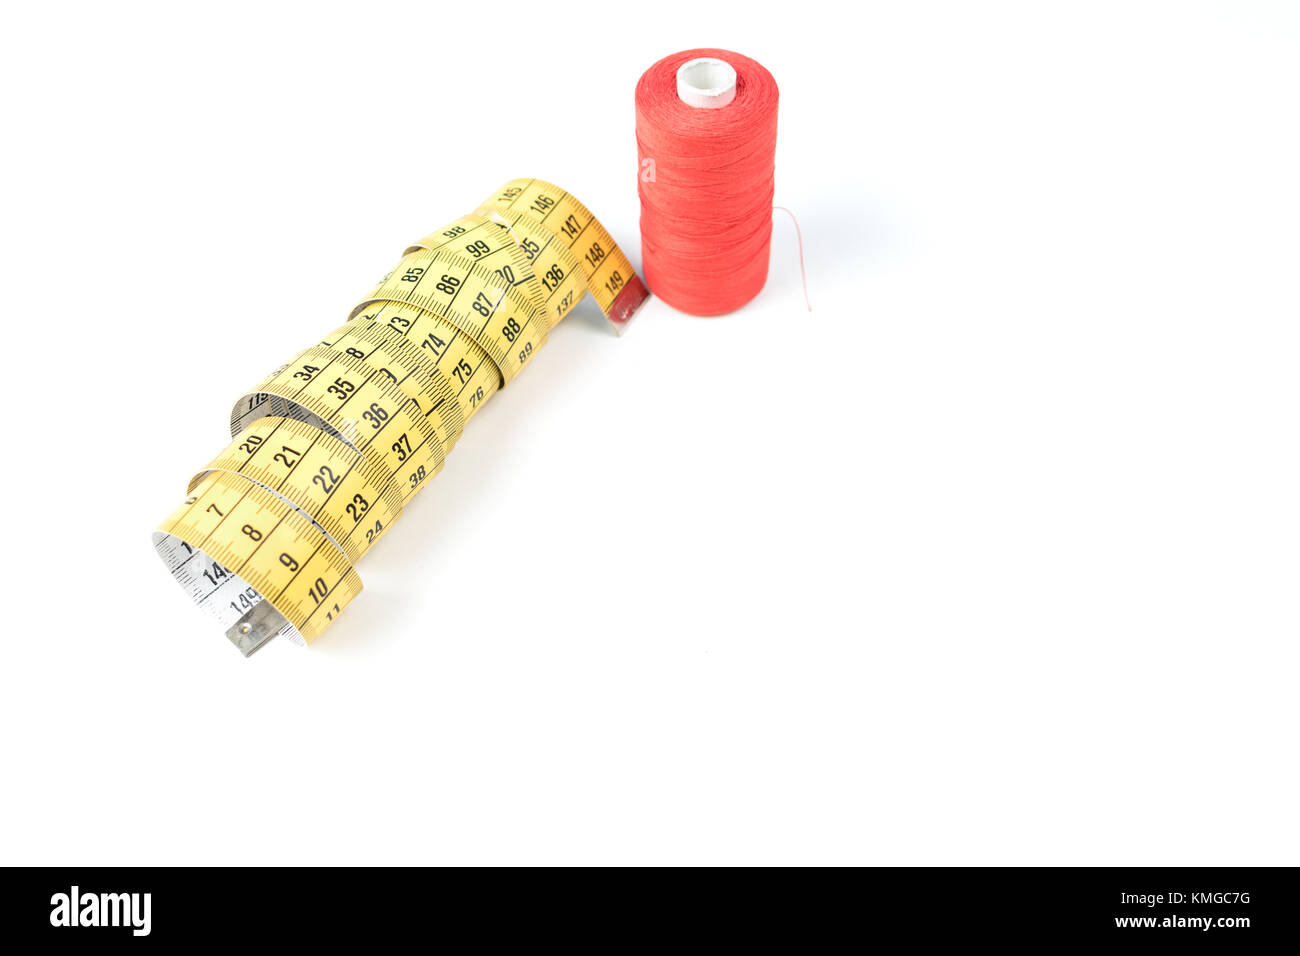 Yellow sewing measuring tape on white background - Stock Image